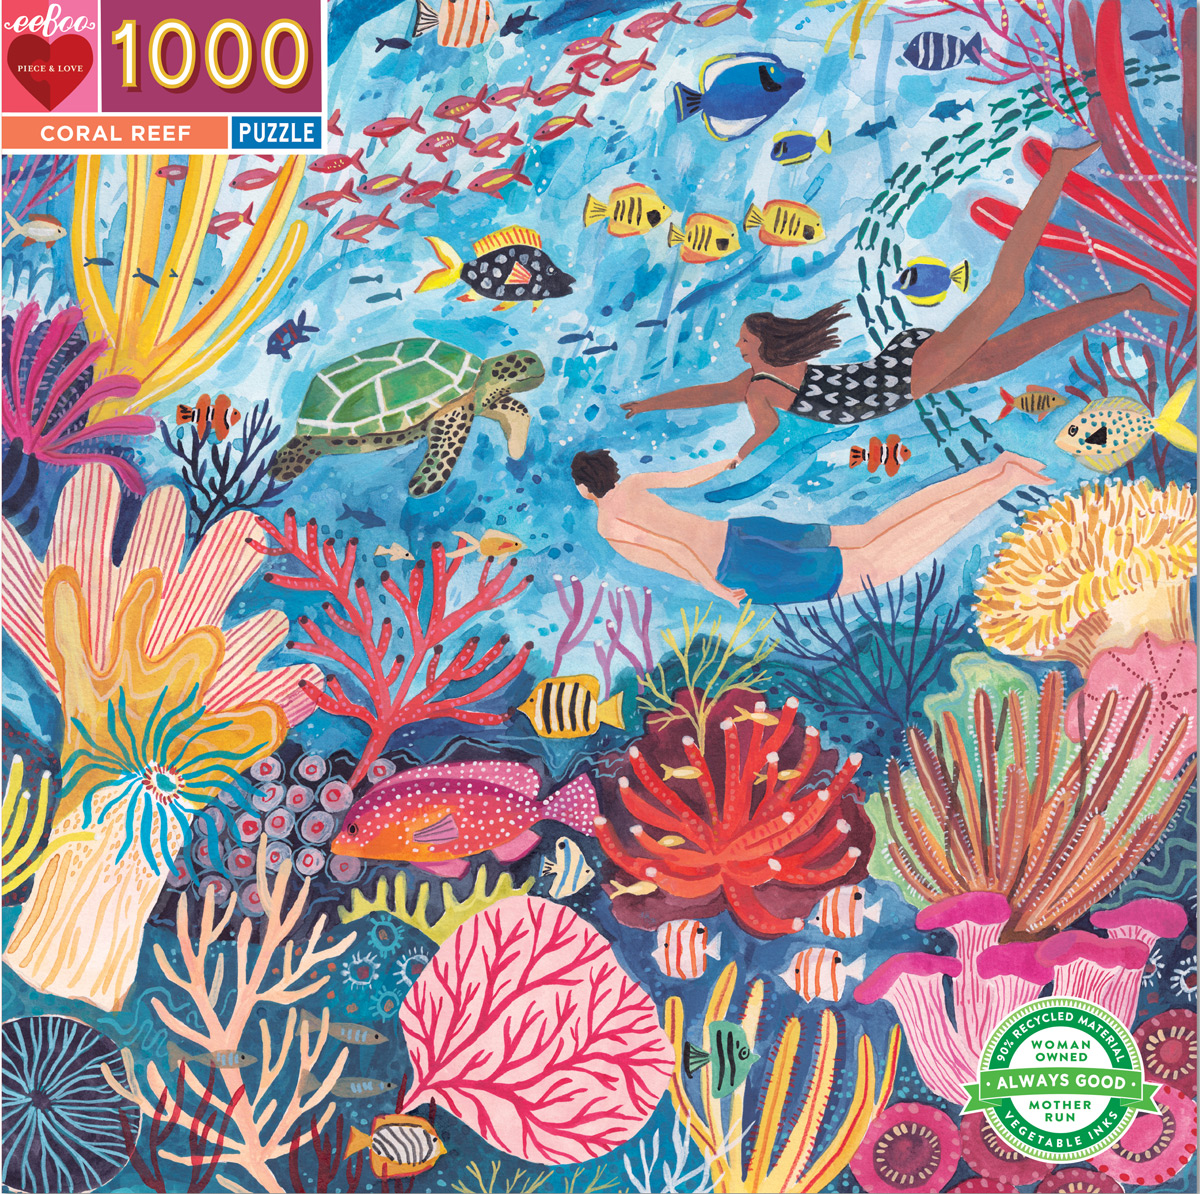 Coral Reef Under The Sea Jigsaw Puzzle